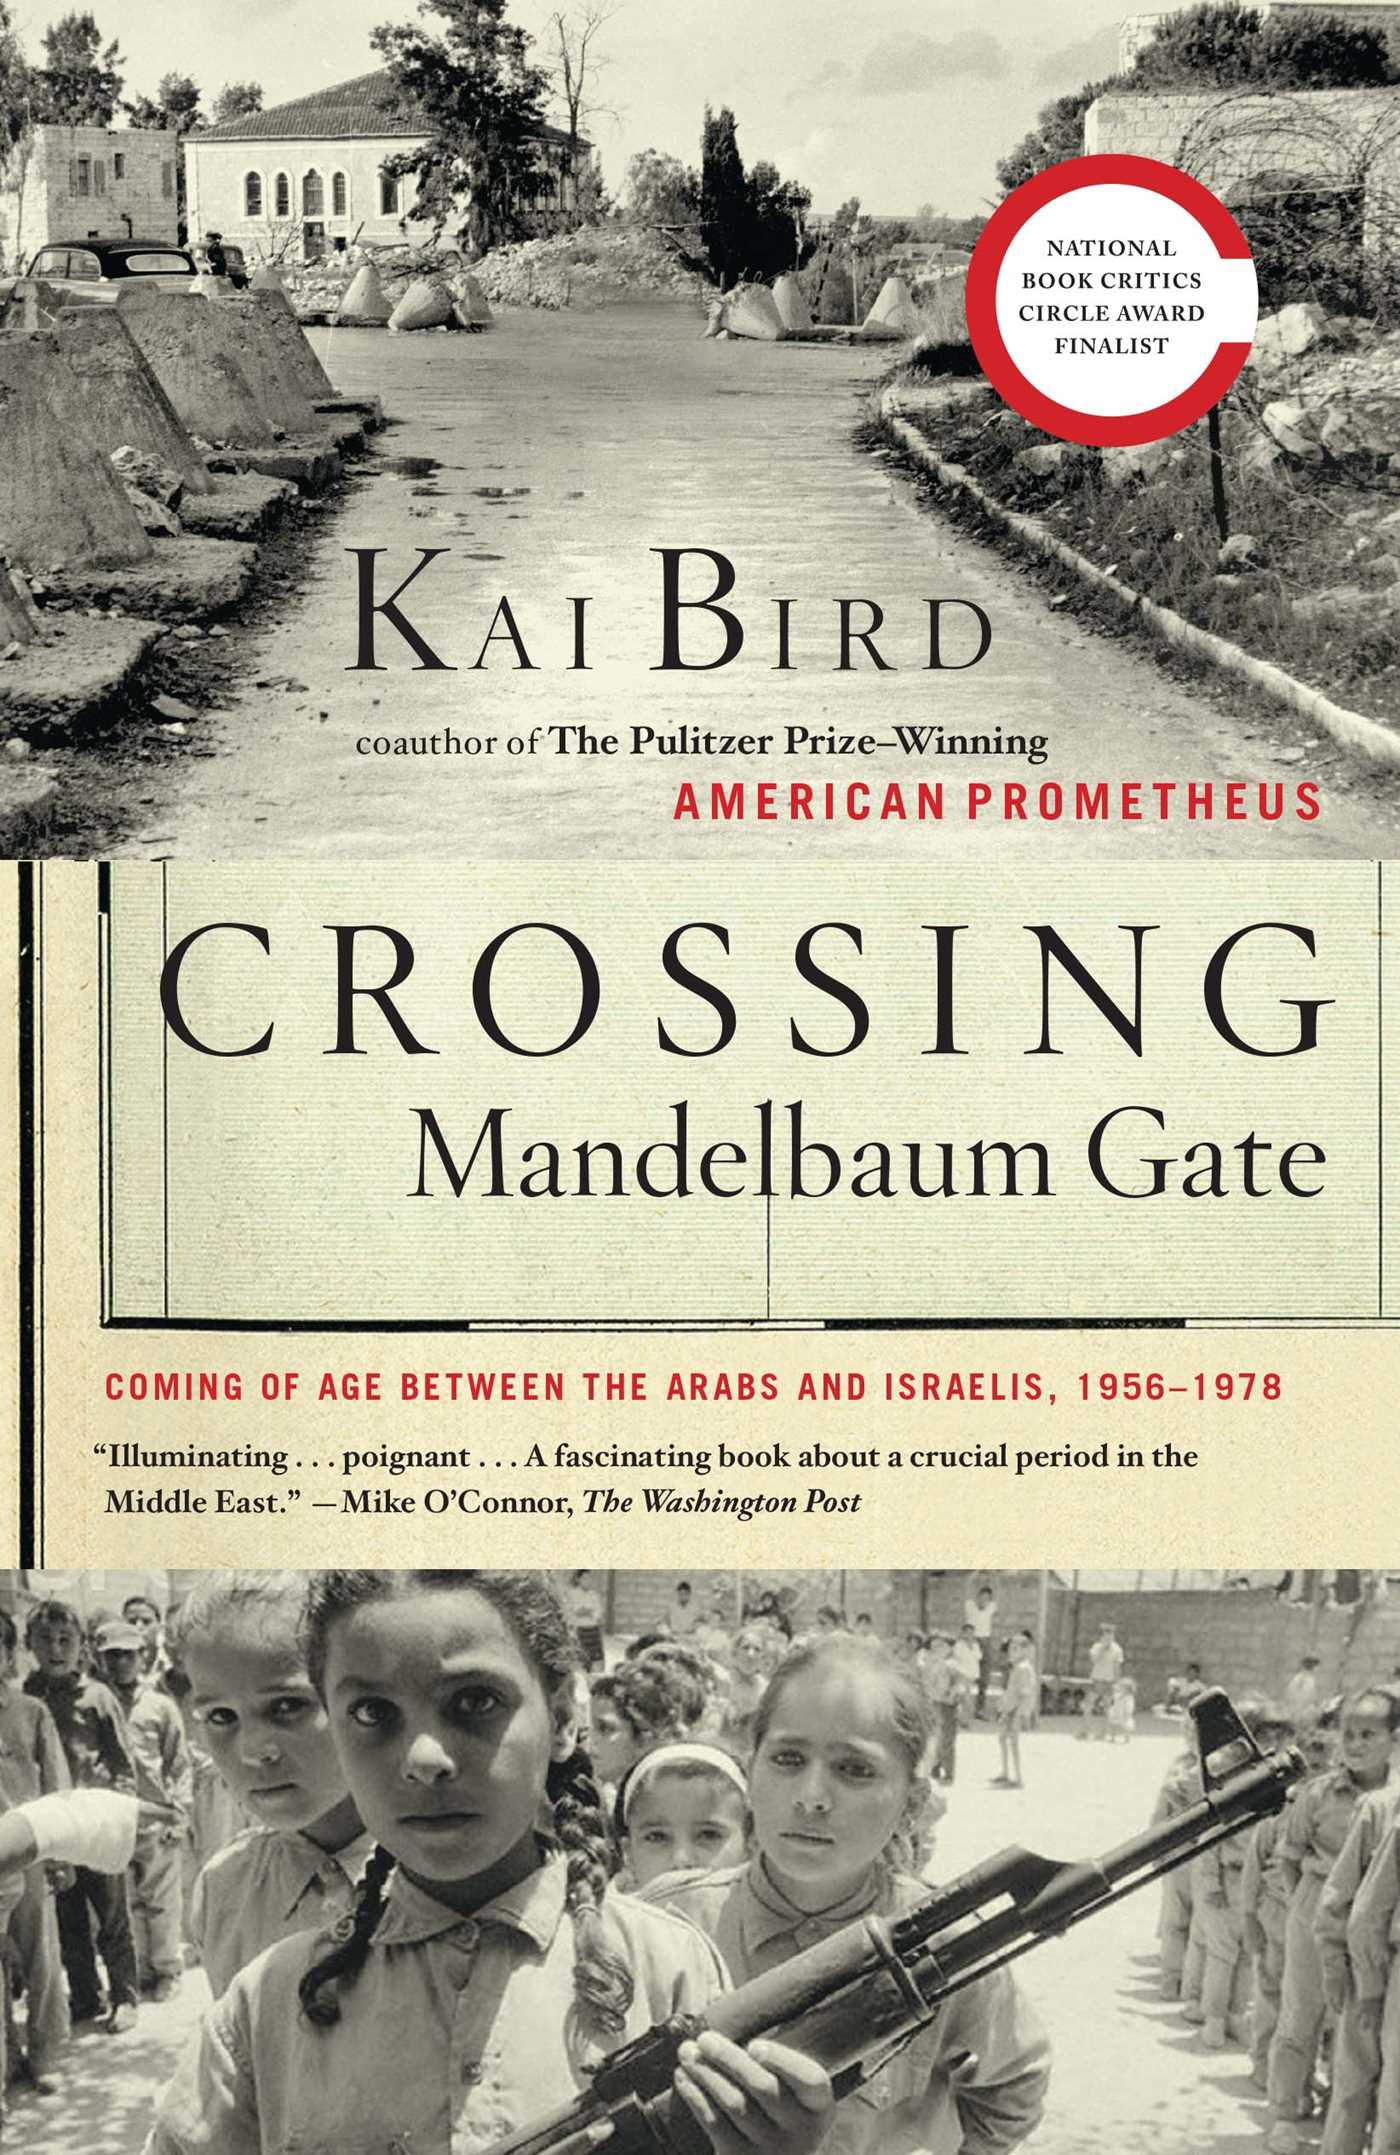 Crossing-mandelbaum-gate-9781439171608_hr